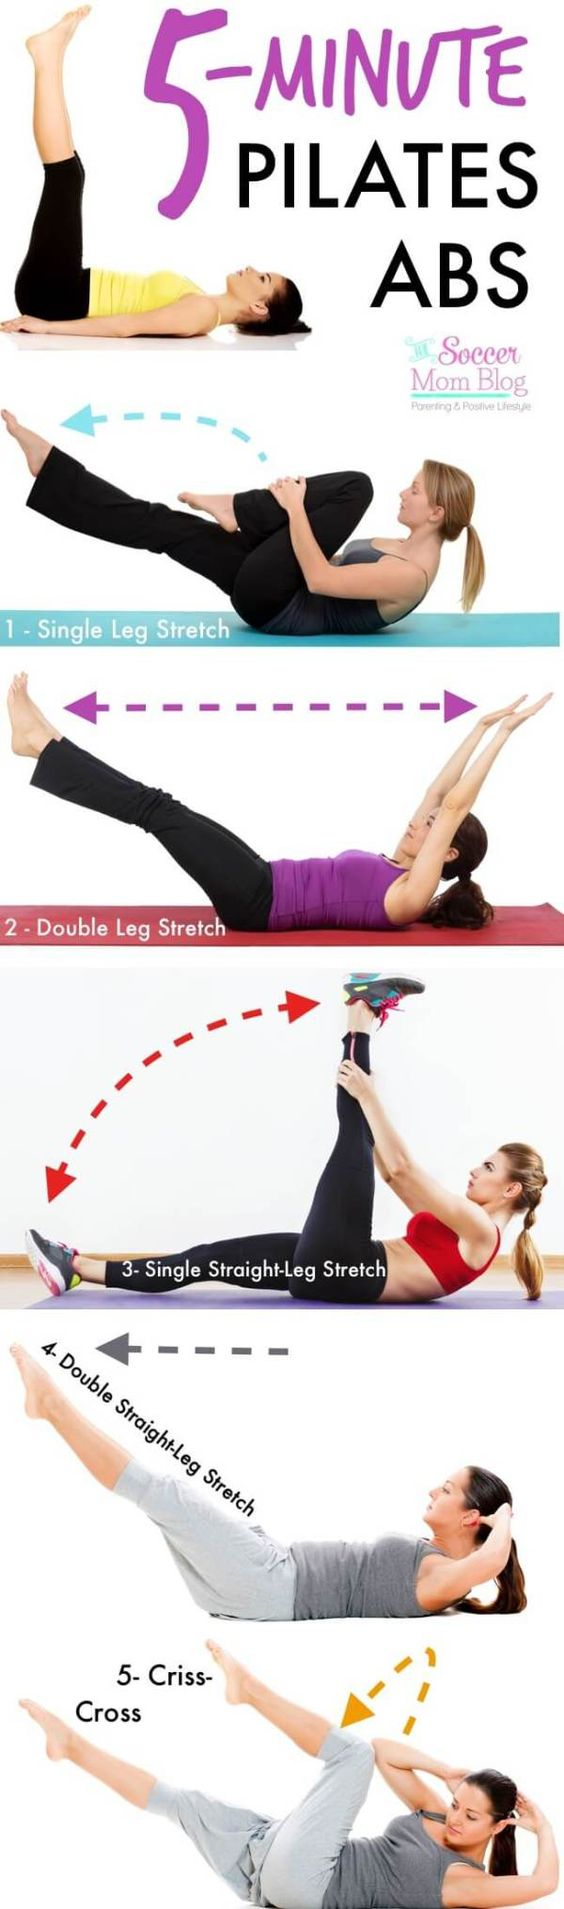 Blast fat and tone all muscles in your core with this amazingly effective 5-minute ab workout: the Pilates Series of Five - Step-by-step photo instructions